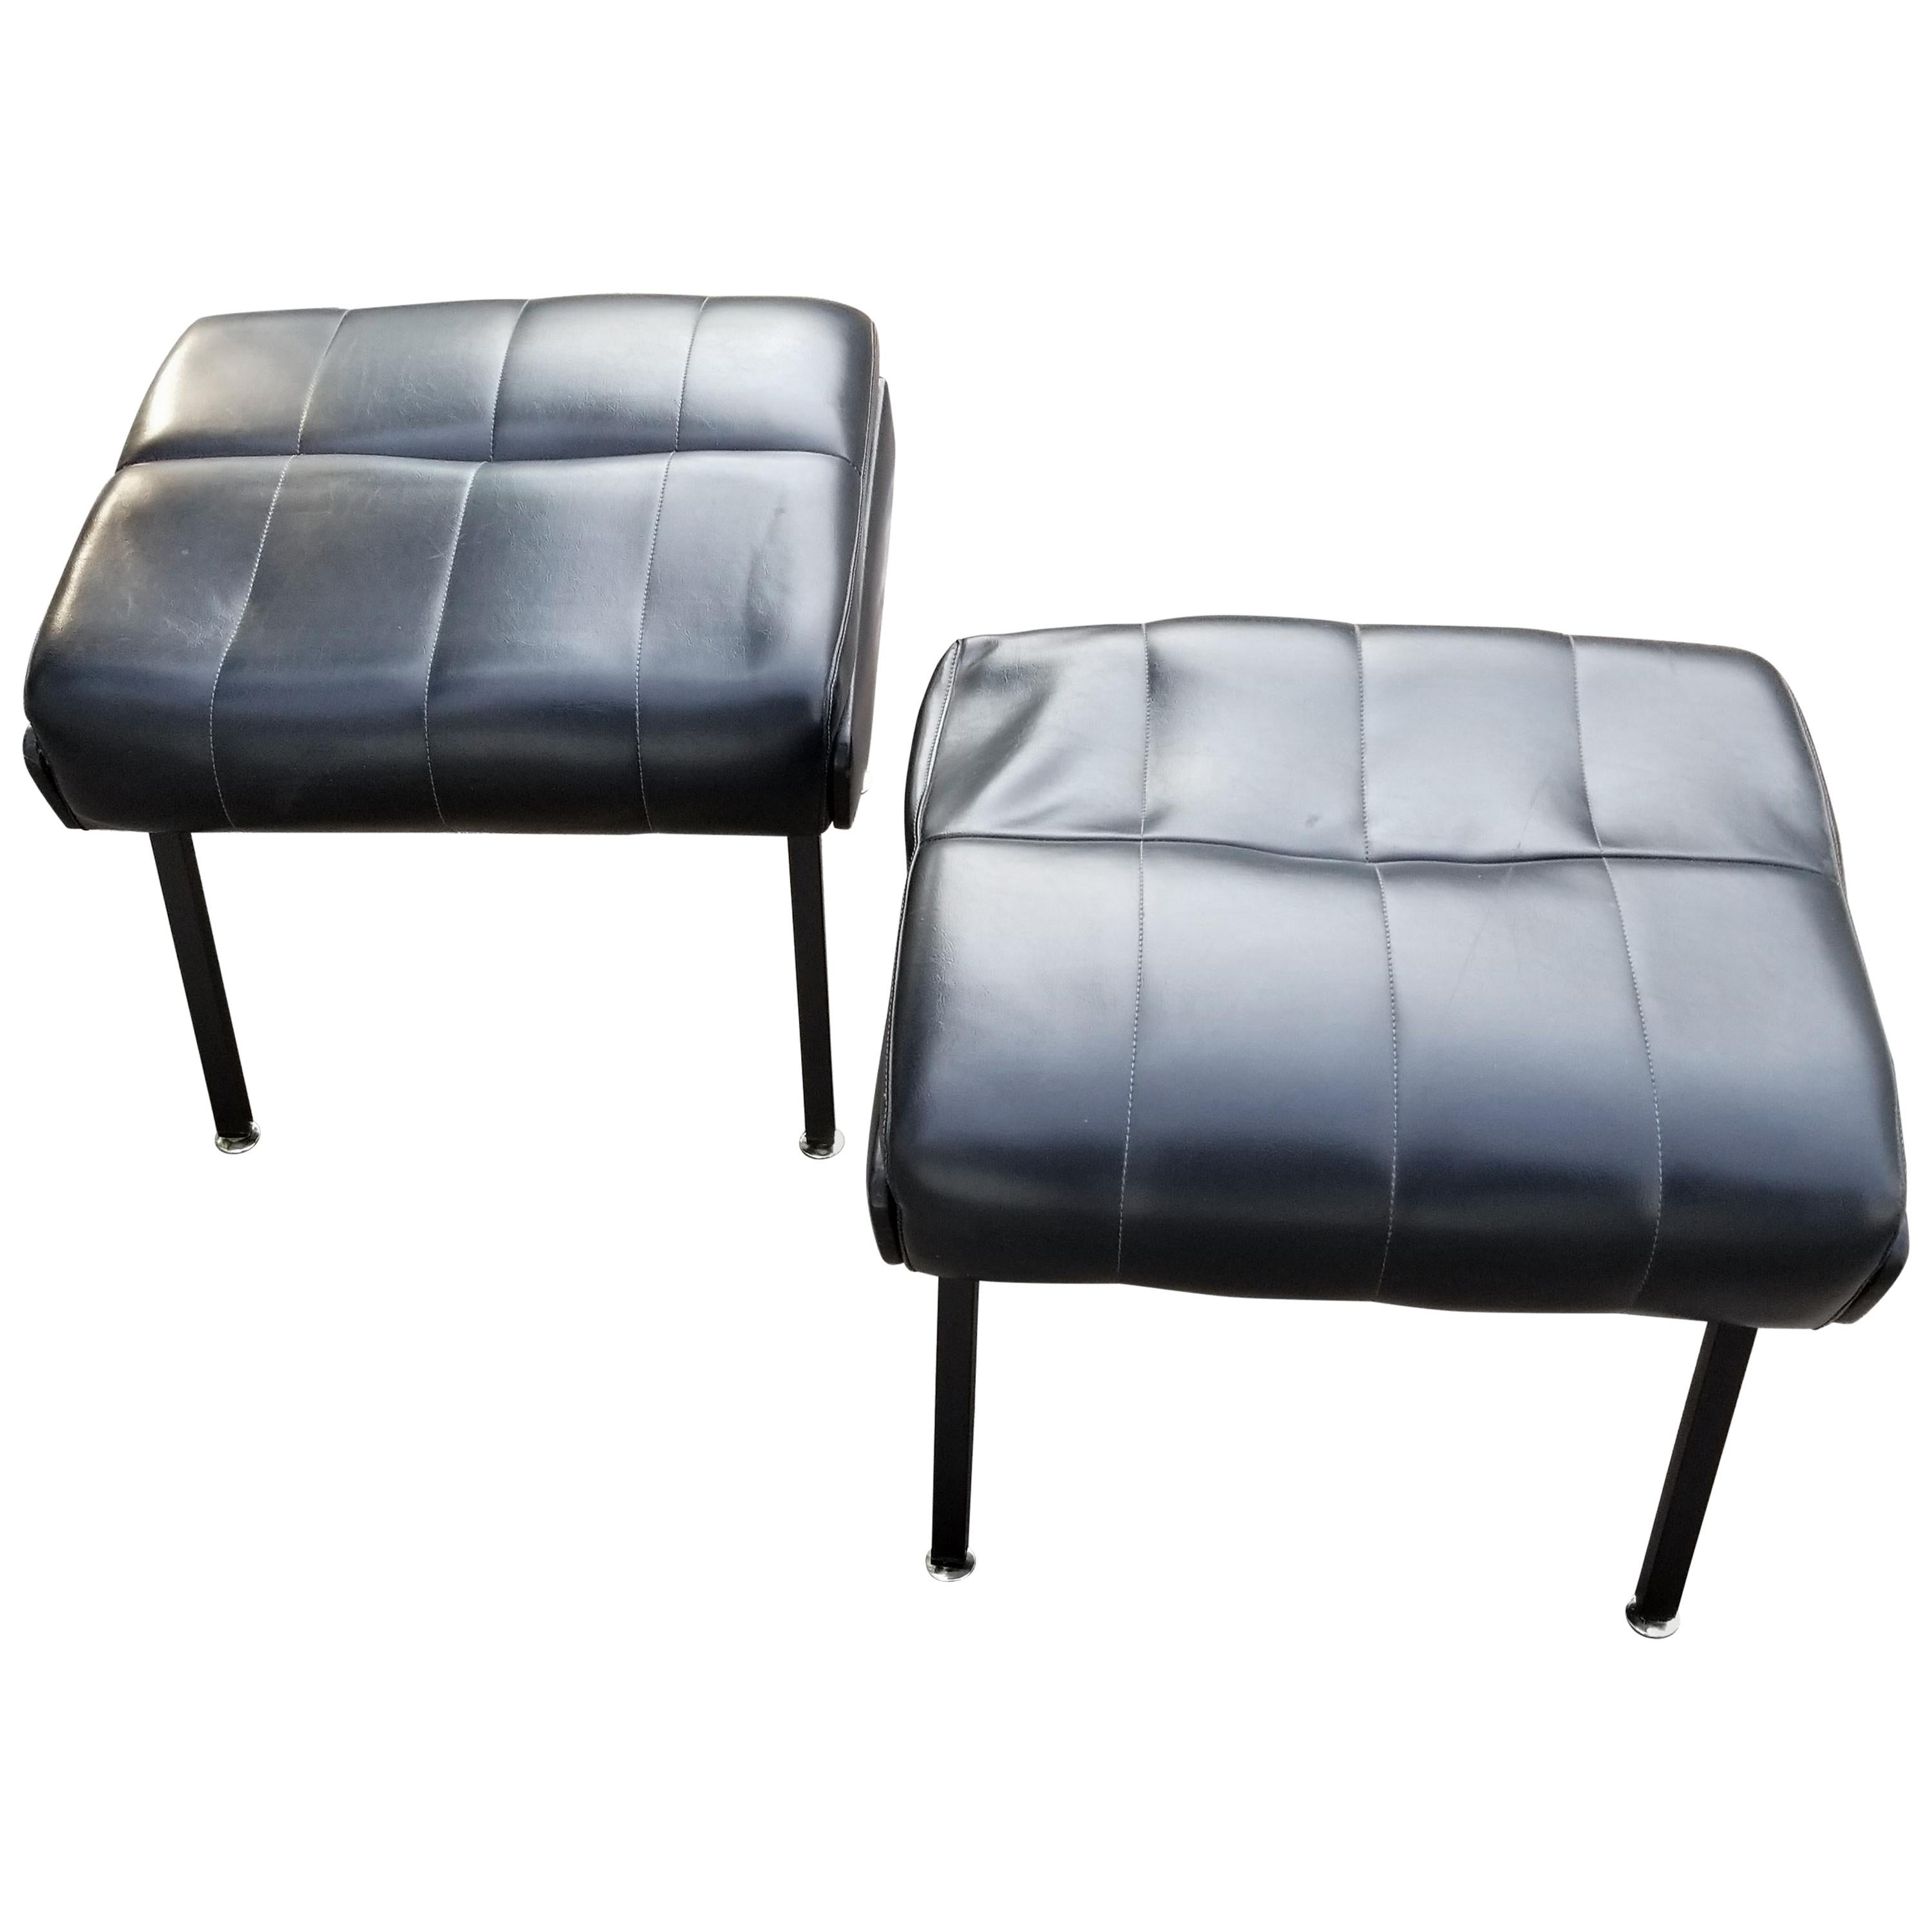 Pair of French 1950s Ottoman